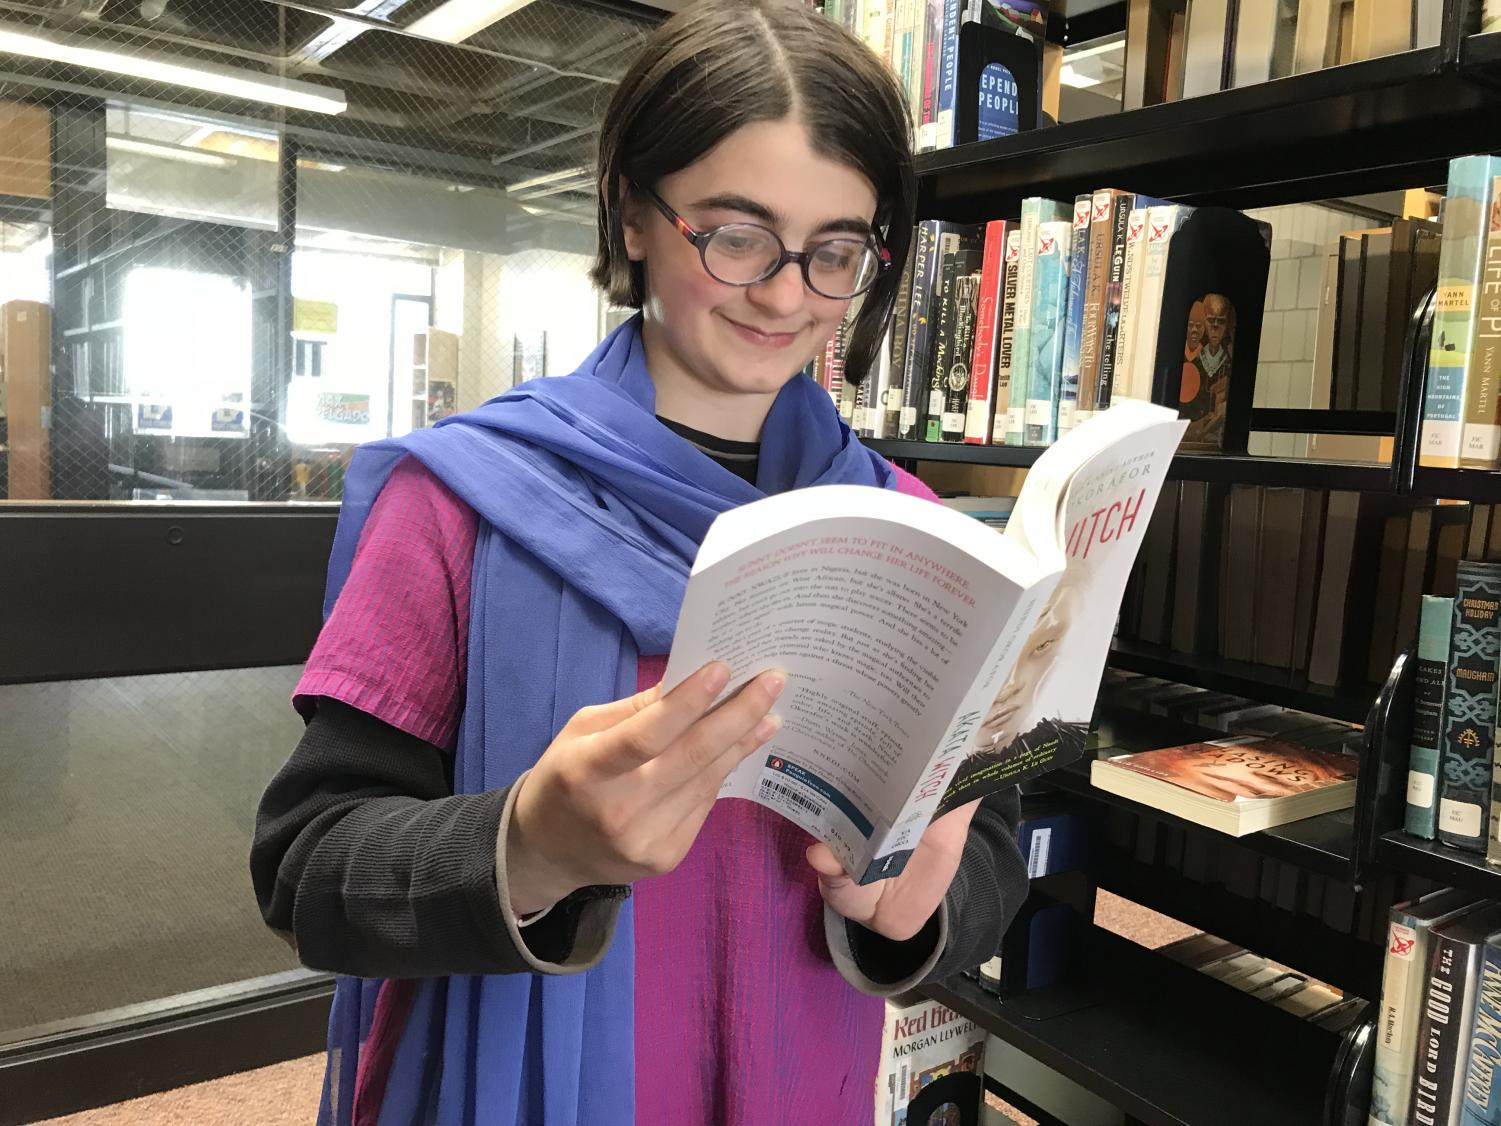 Sophomore Savita Asvathi-Yopp recommends books that expand one's cultural perspectives.